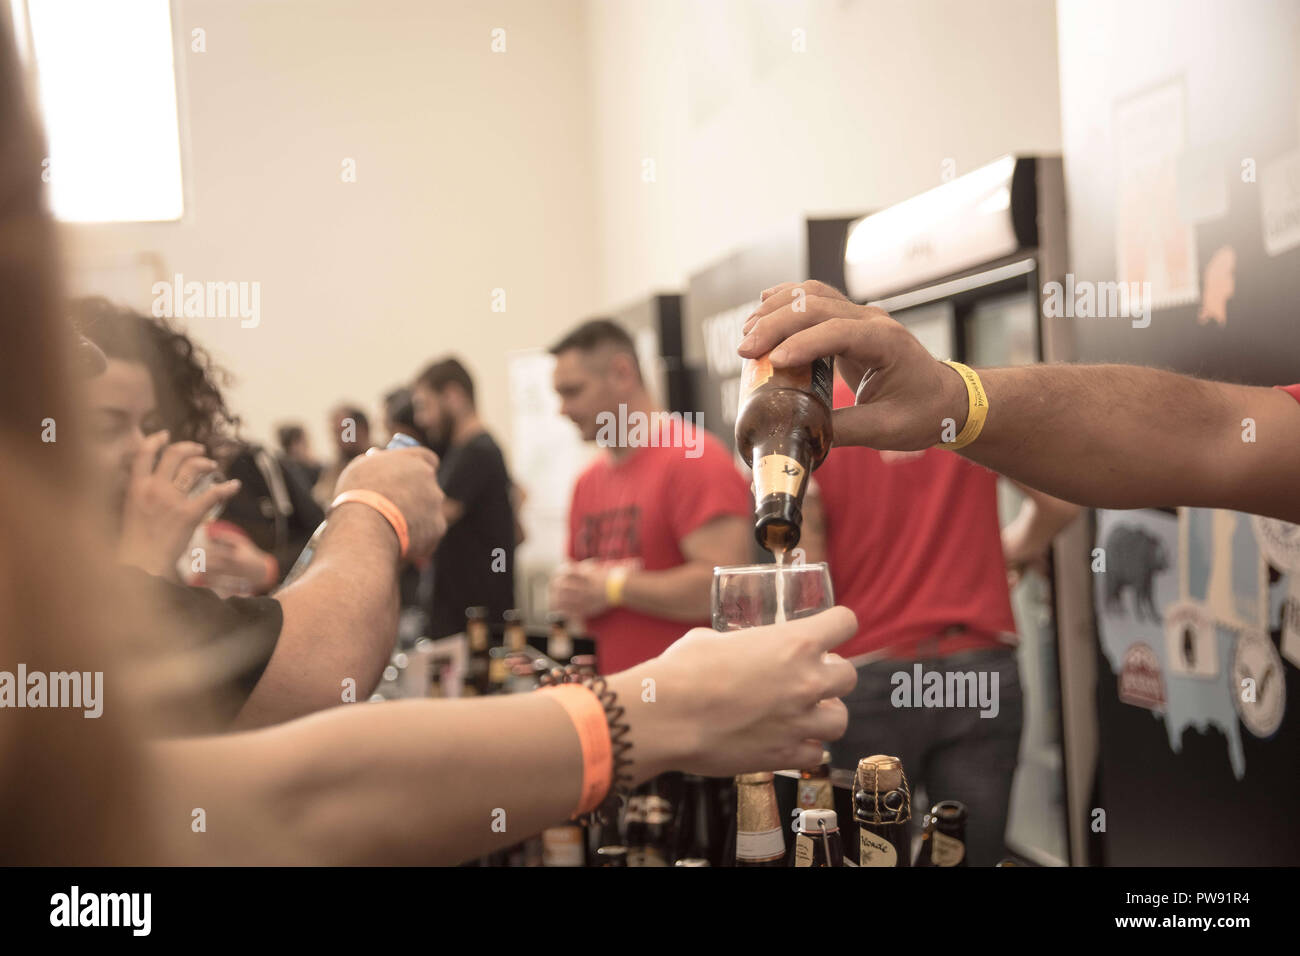 Athens, Greece. 13th Oct, 2018. A beer seen being poured into a glass from a bottle during the exhibition.The 5th Zythognosia Exhibition, people get a chance during the exhibition to taste multiple brews and premium beers from different brands and companies like Levante for Zante Lager, Asylum for Asylum saison, Mikonu for Mikonu Pale Ale, Deals for Fischer, Samichlaus and Cava di patsi for Flaros Session Ale in Zappeion Megaron in Athens. Credit: Nikolas Joao Kokovlis/SOPA Images/ZUMA Wire/Alamy Live News - Stock Image